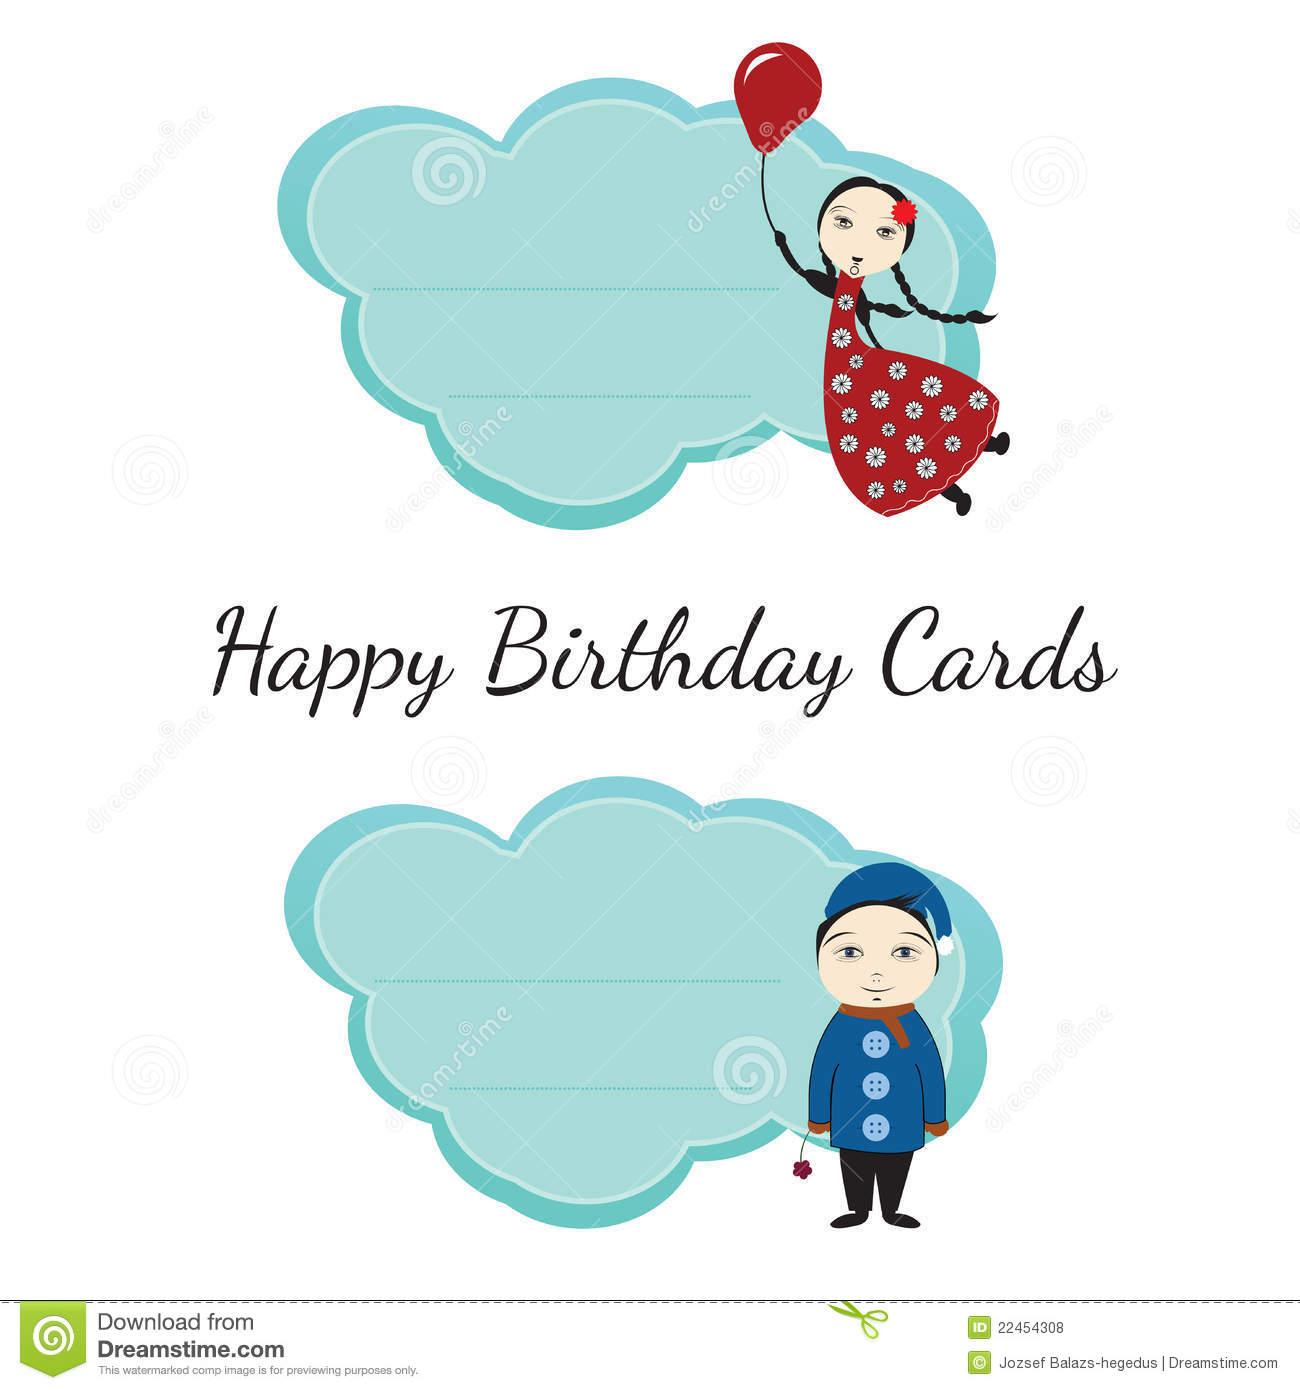 Happy Birthday Cards For Kids Royalty Free Photos Image – Birthday Cards for Kids